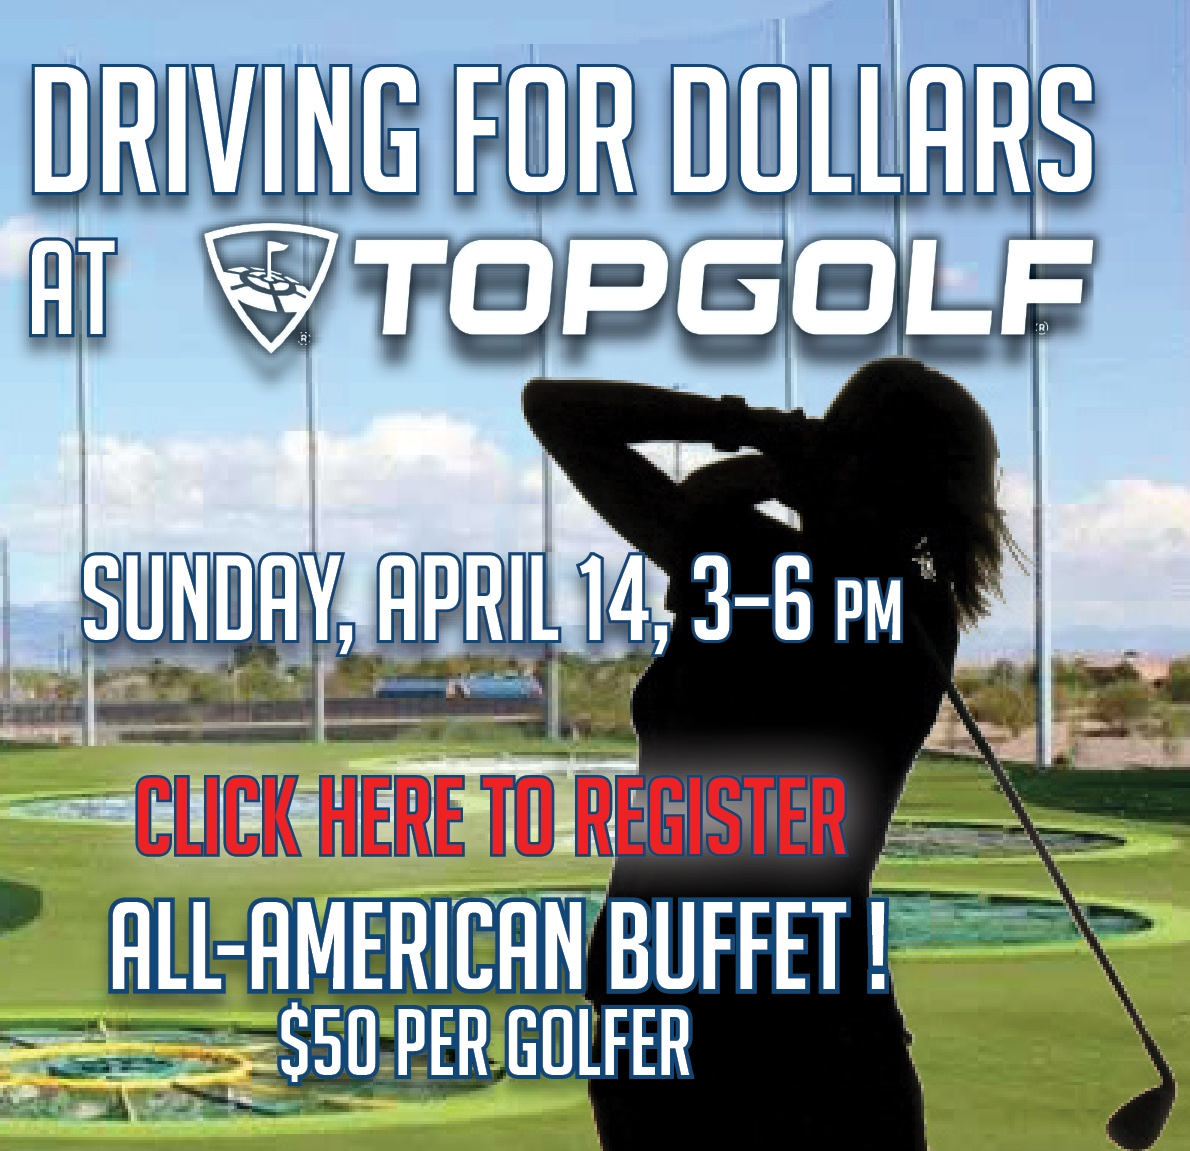 Click here to register for the Driving for Dollars Fundraiser at TopGolf